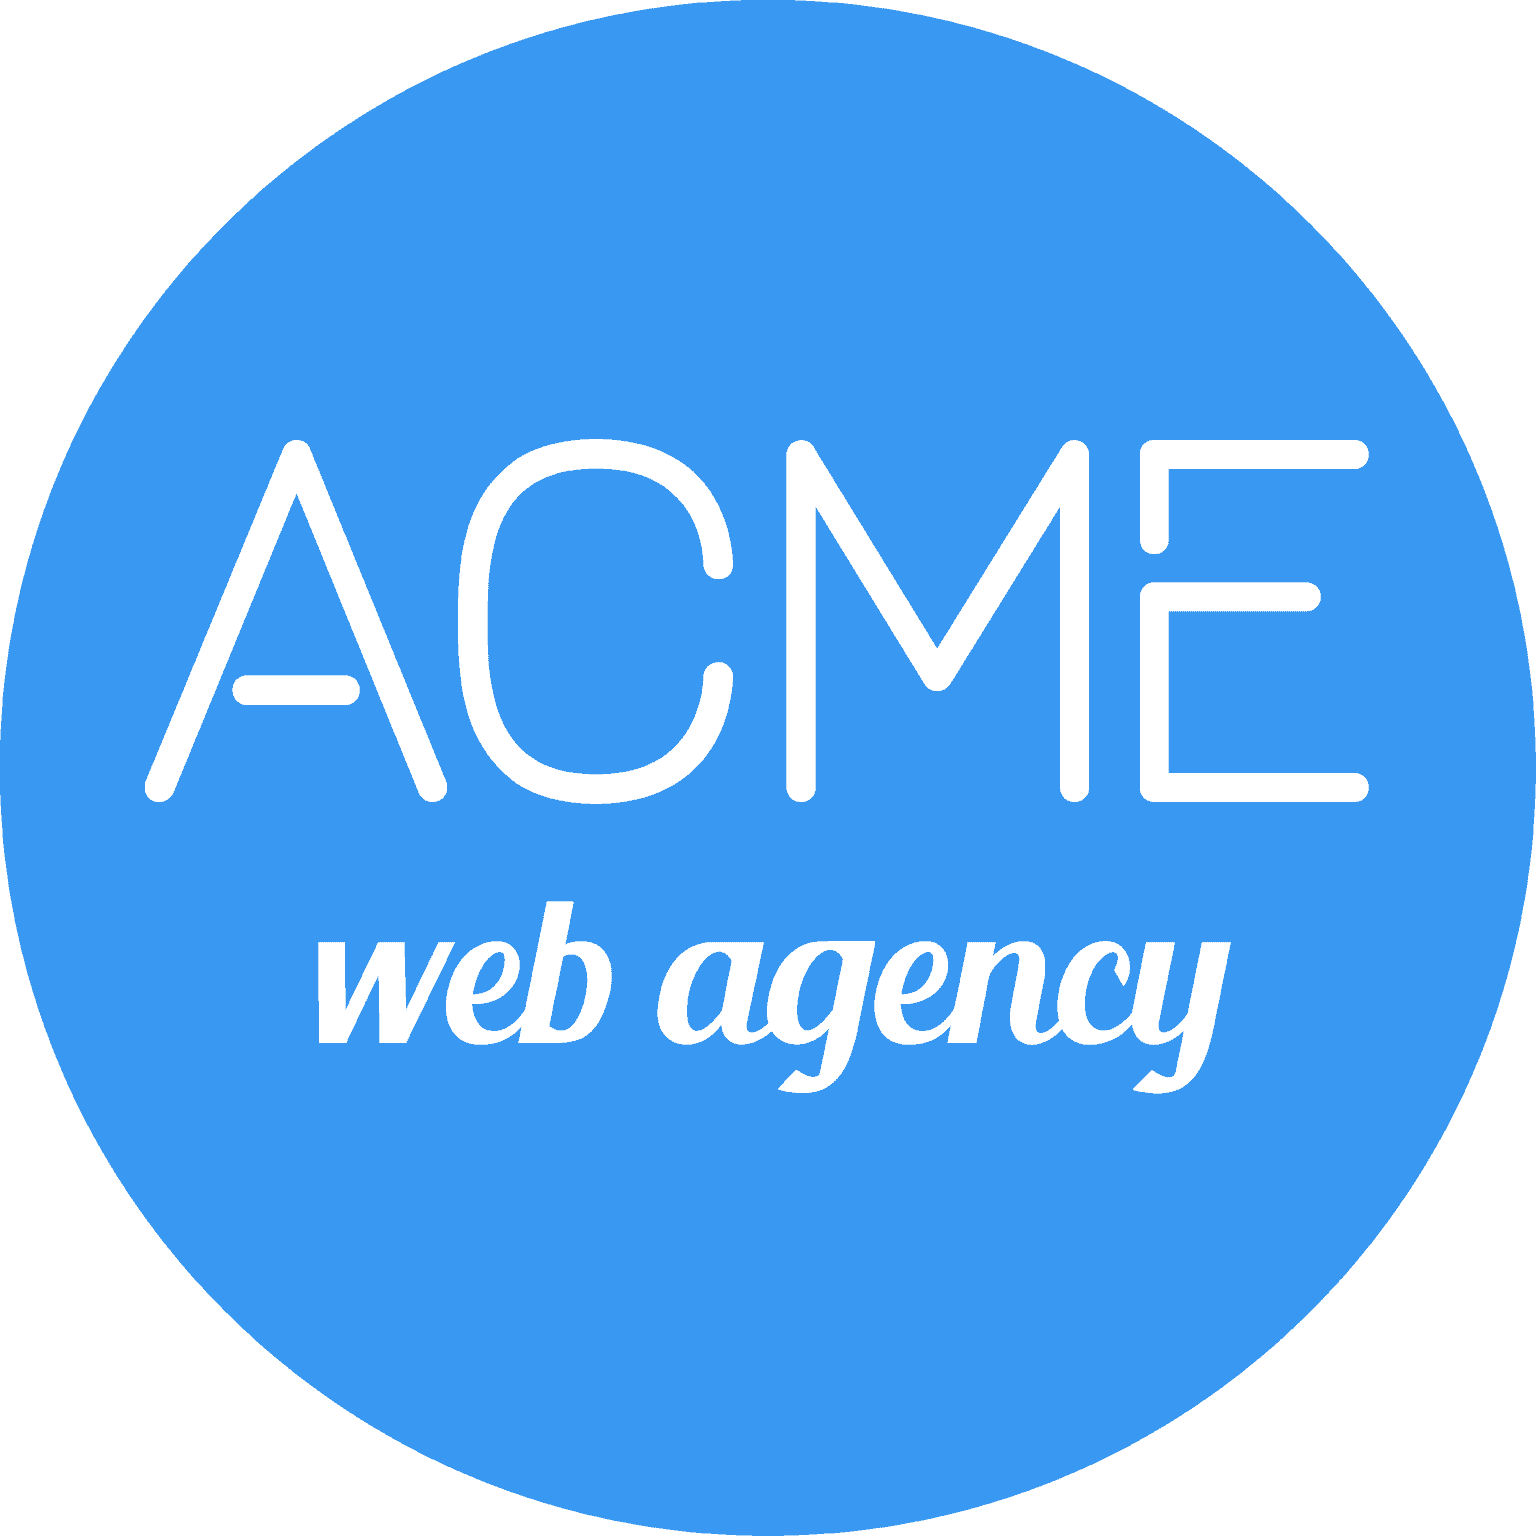 New York City SEO Specialist, New York SEO Consultant, Acme Web Agency